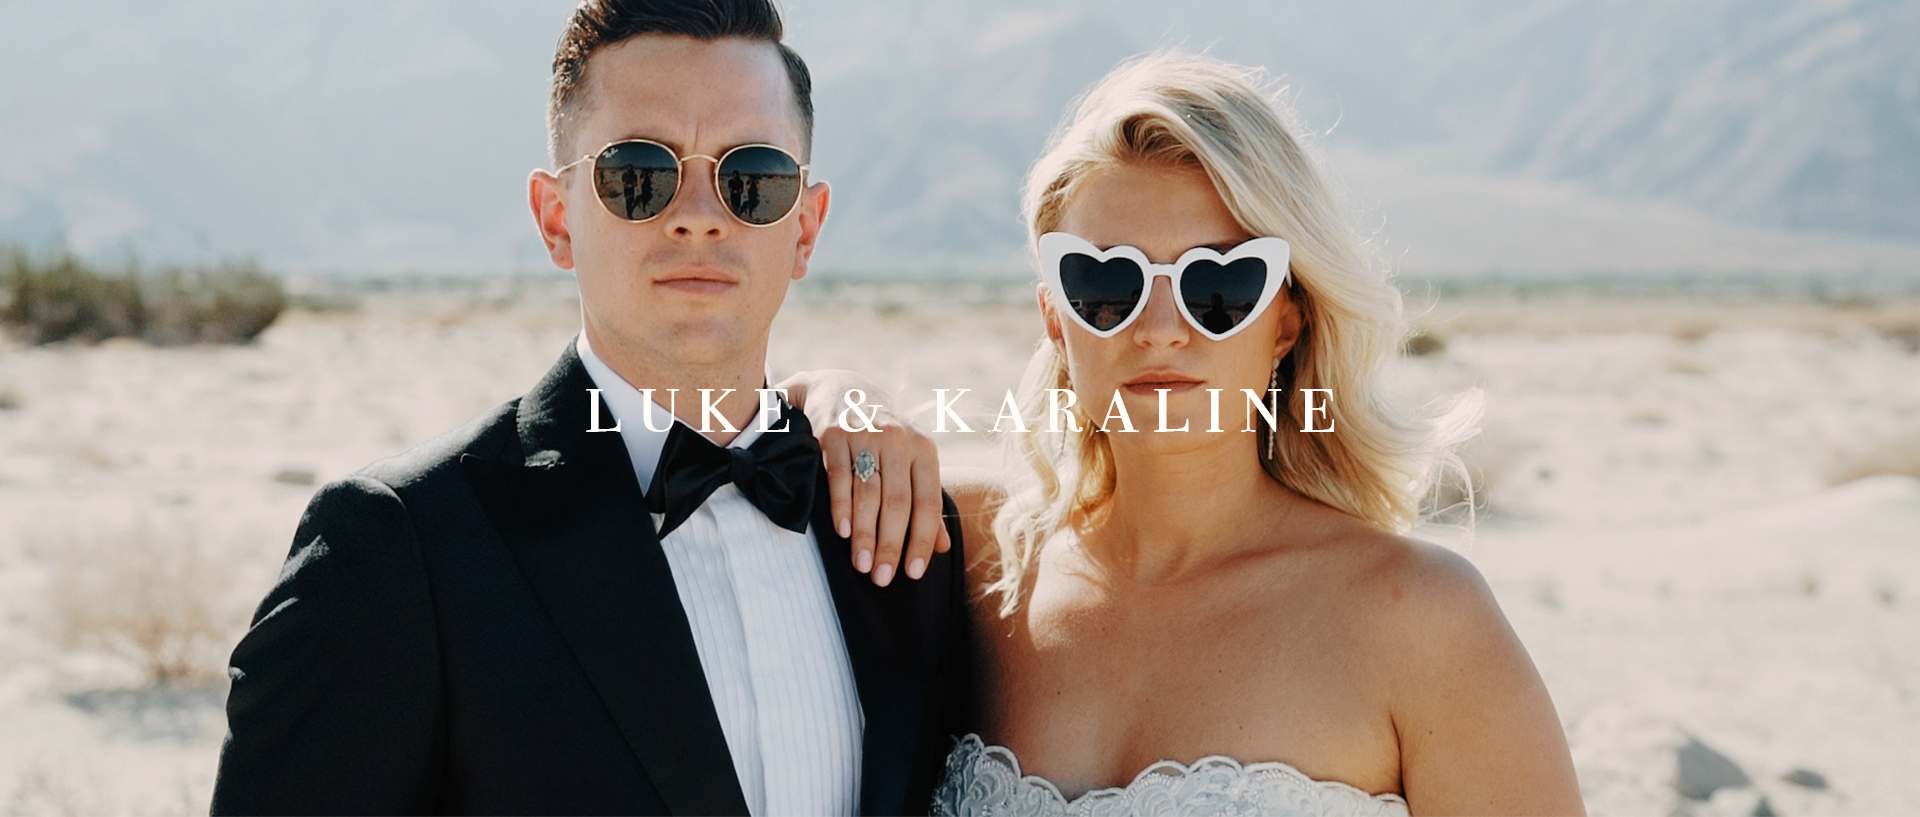 Luke + Karaline | Palm Springs, California | Frederick Loewe Estate